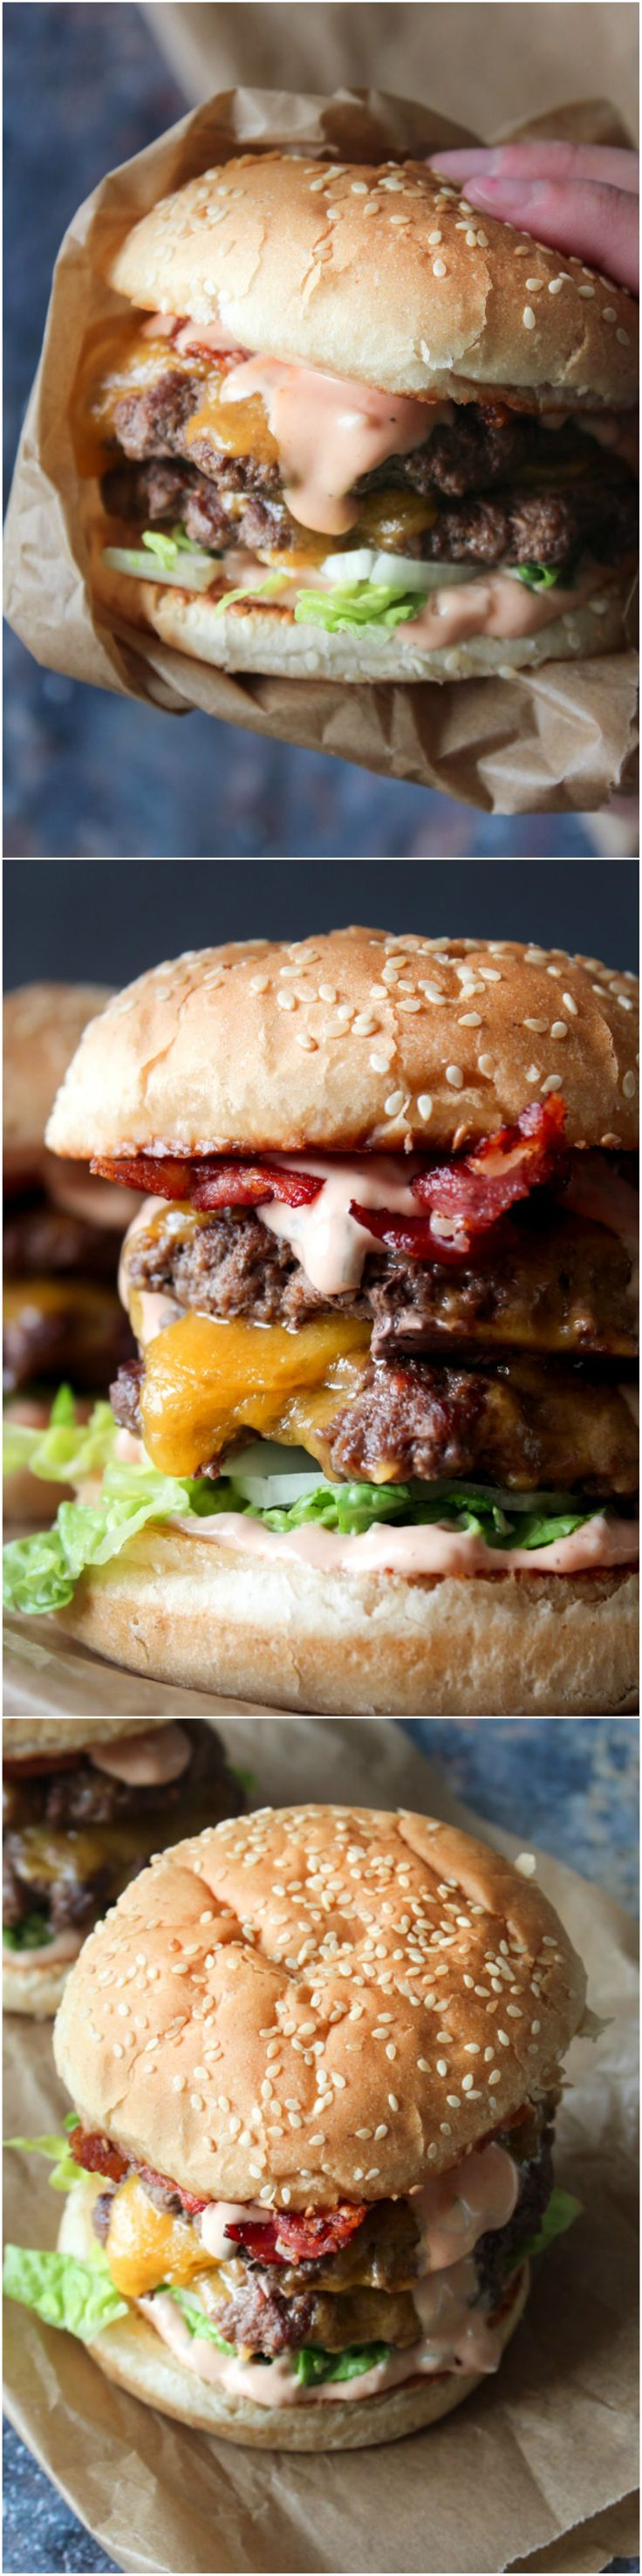 Homemade double cheeseburger with a homemade burger sauce - homemade big mac - easy dinner - homemade burger - homemade cheeseburger - bacon recipe